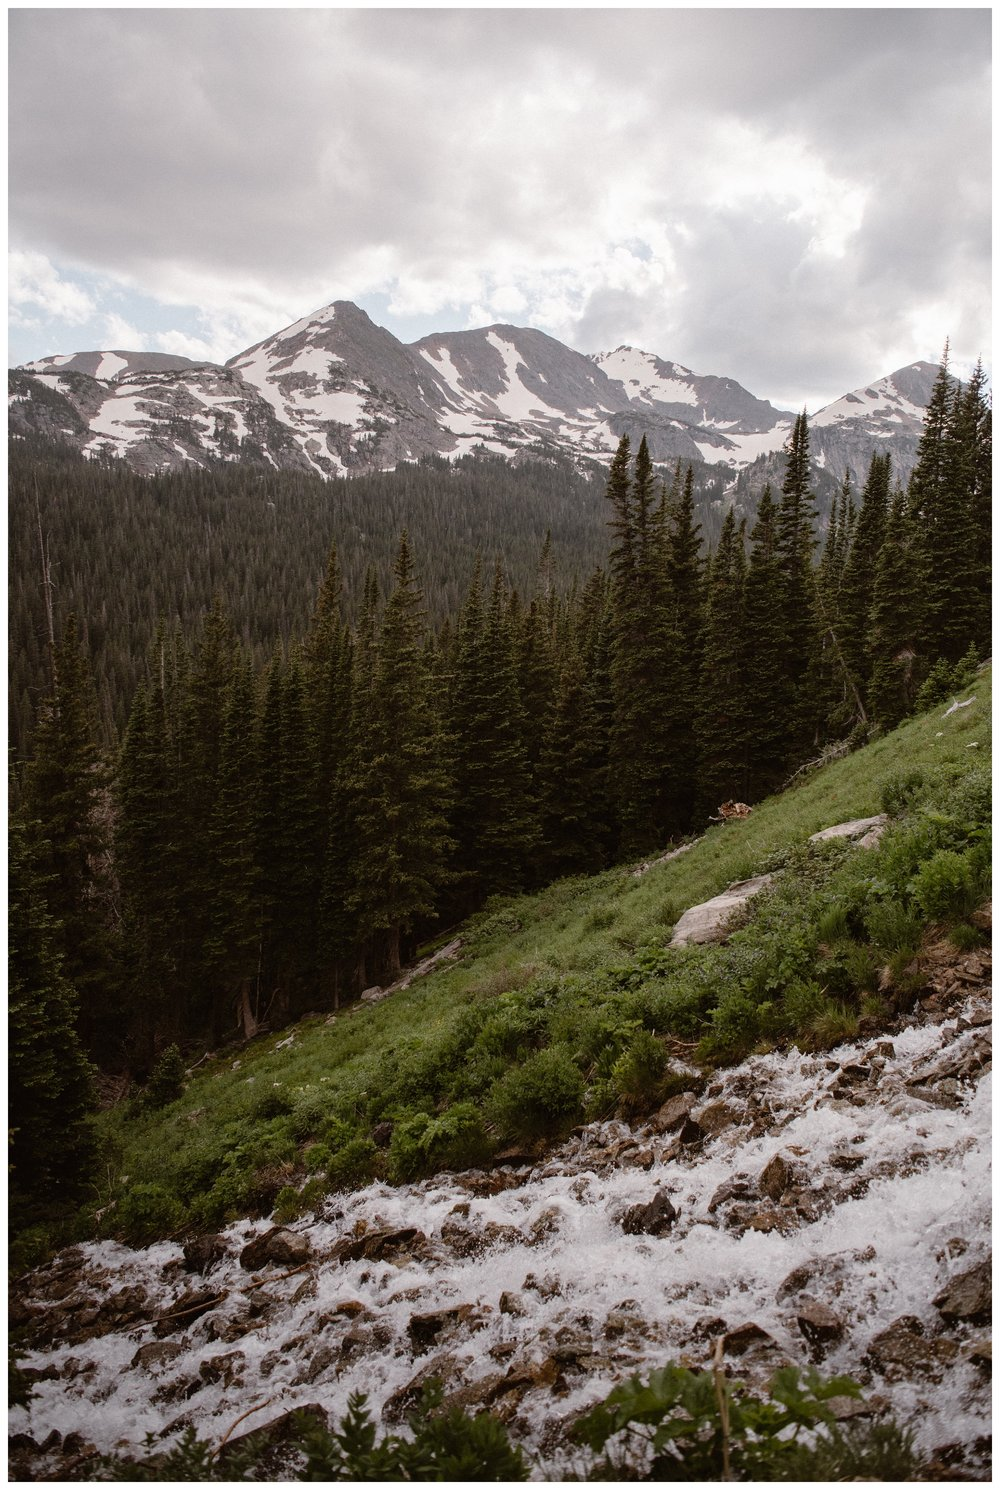 Spring snow runoff flows down the side of the Rocky Mountains during a hiking elopement. Photo by Maddie Mae Photo, Adventure Instead.